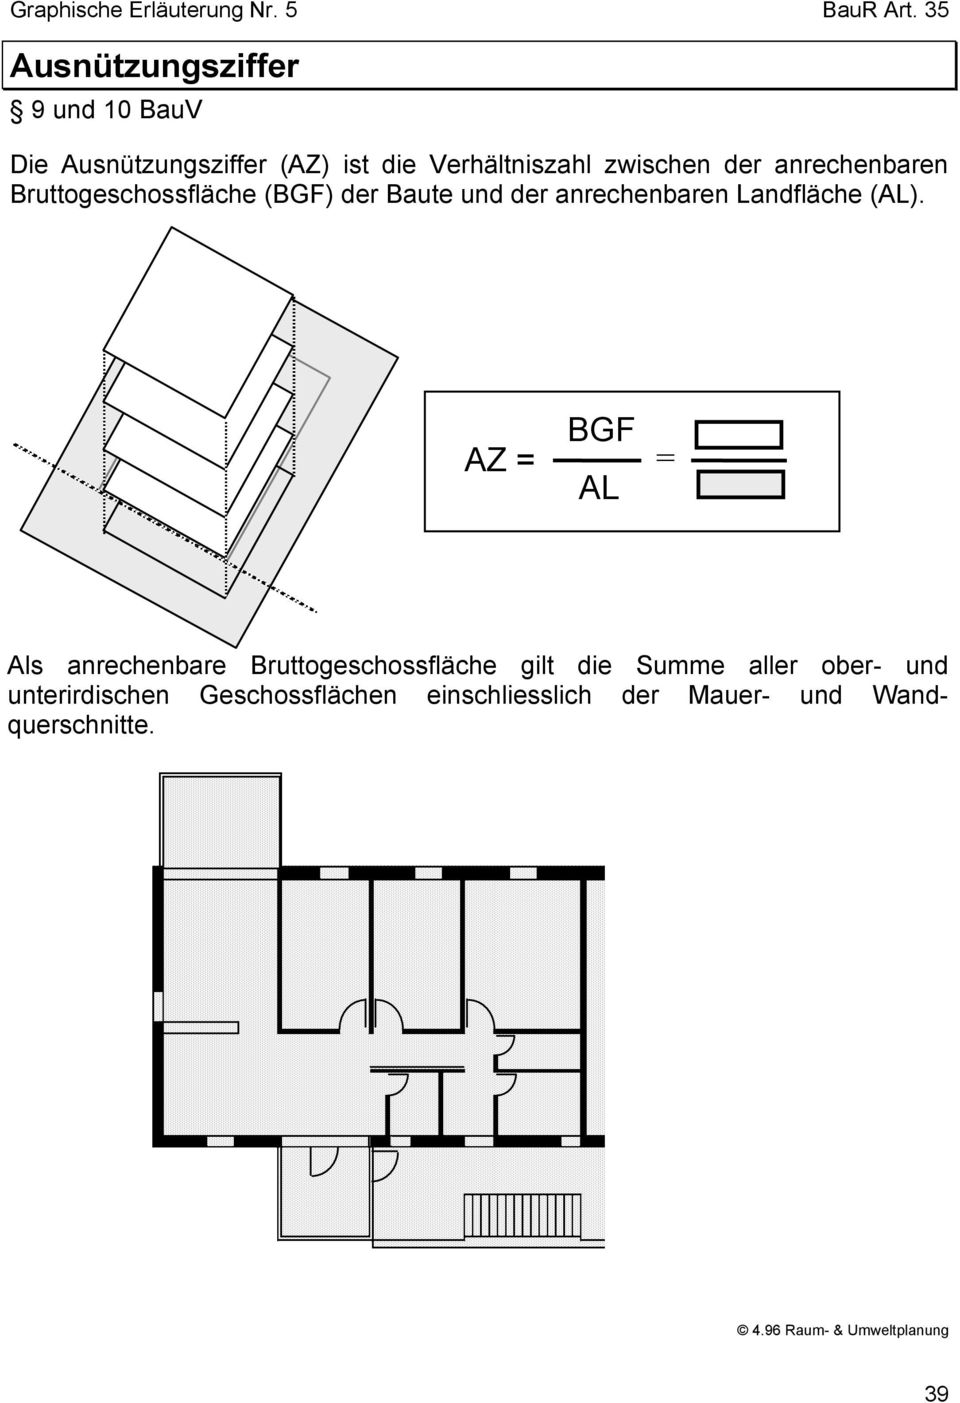 graphische erl uterungen pdf. Black Bedroom Furniture Sets. Home Design Ideas